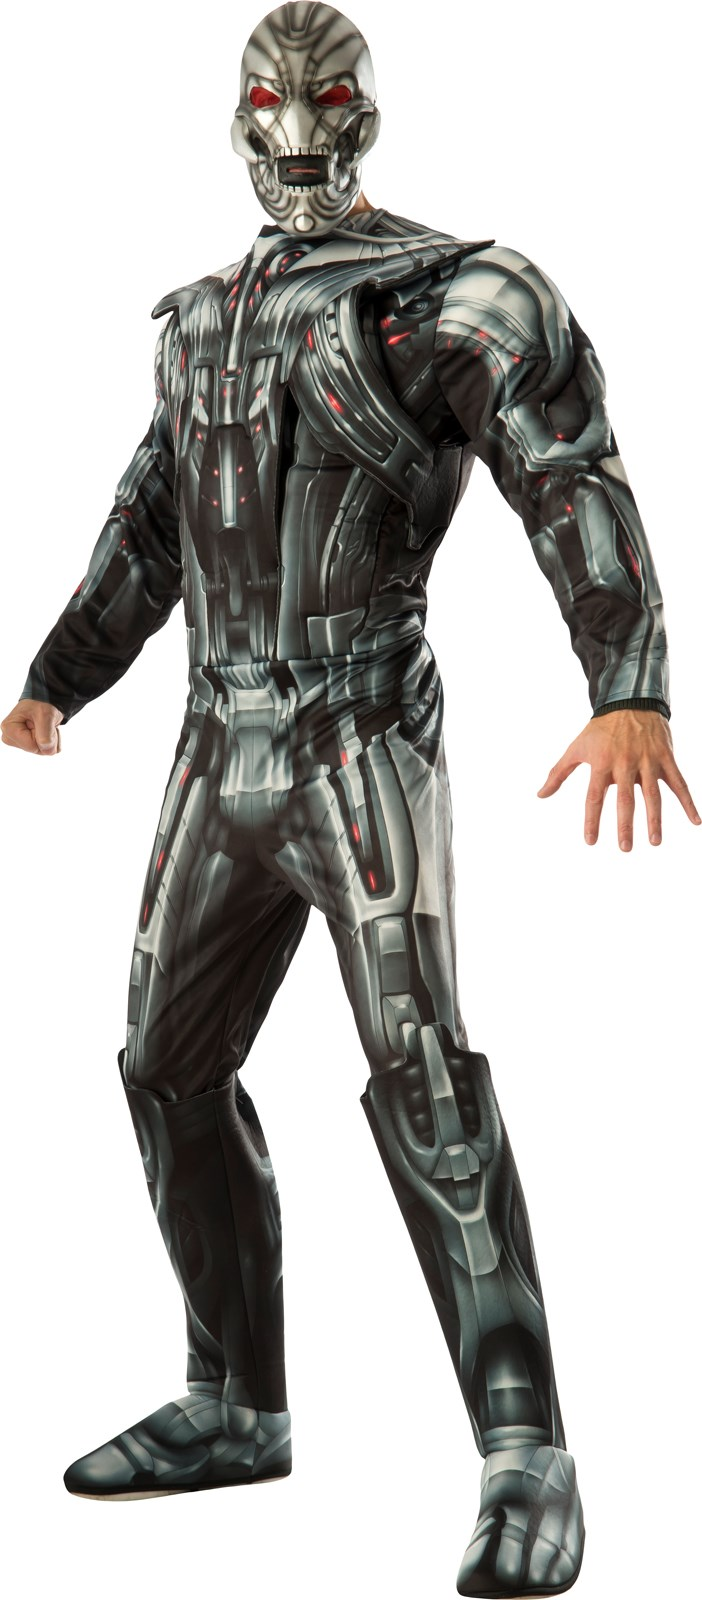 Avengers 2 - Age of Ultron: Mens Ultron Deluxe Costume X-Large (42-46)